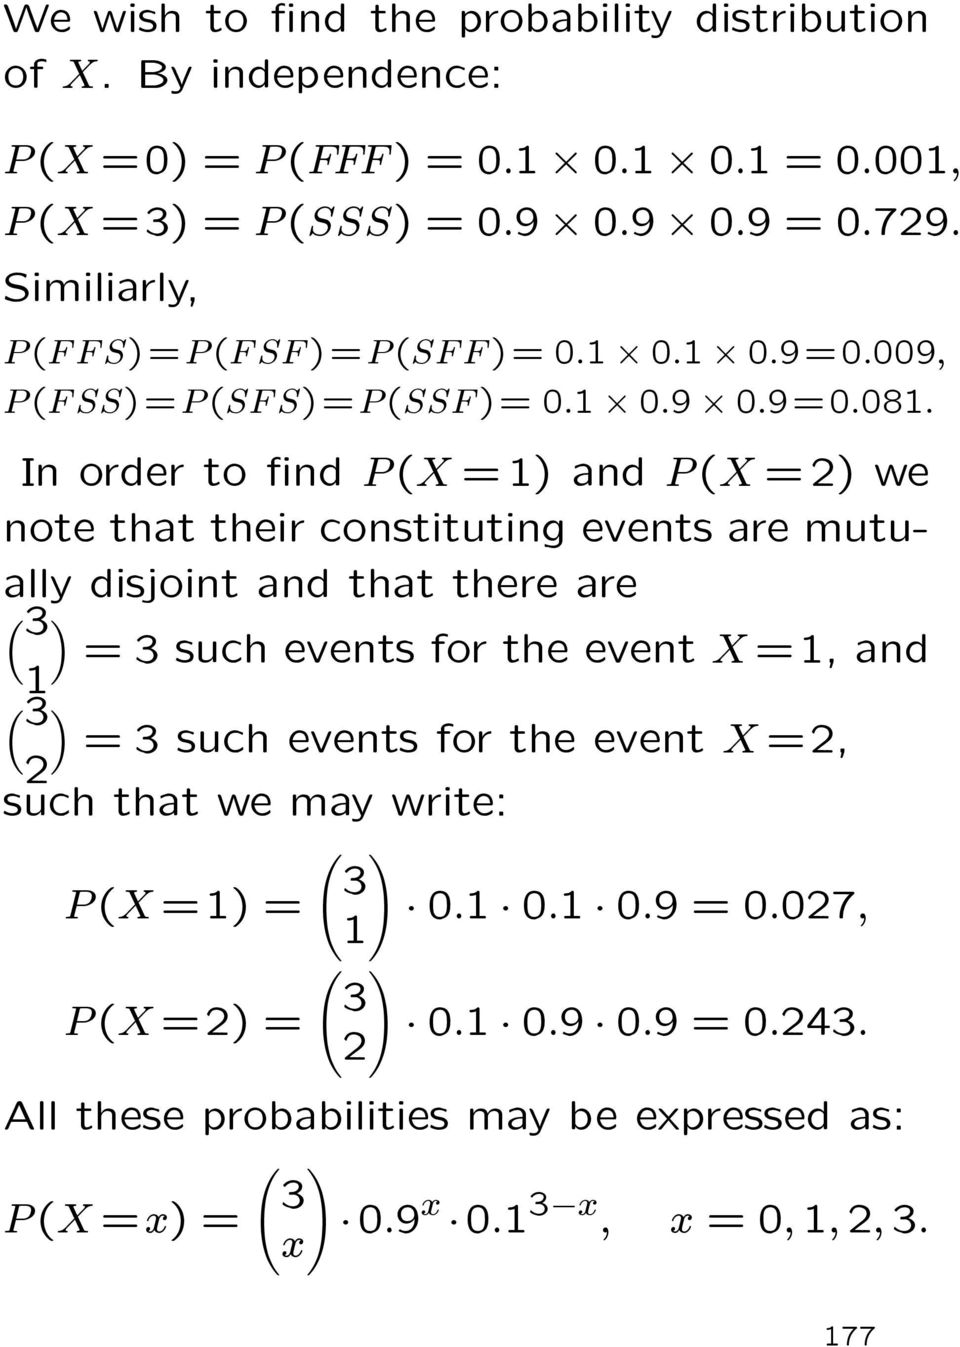 In order to nd P (X =1) and P (X =2) we note that their constituting events are mutually disjoint and that there are 3 = 3 such events for the event X =1, and